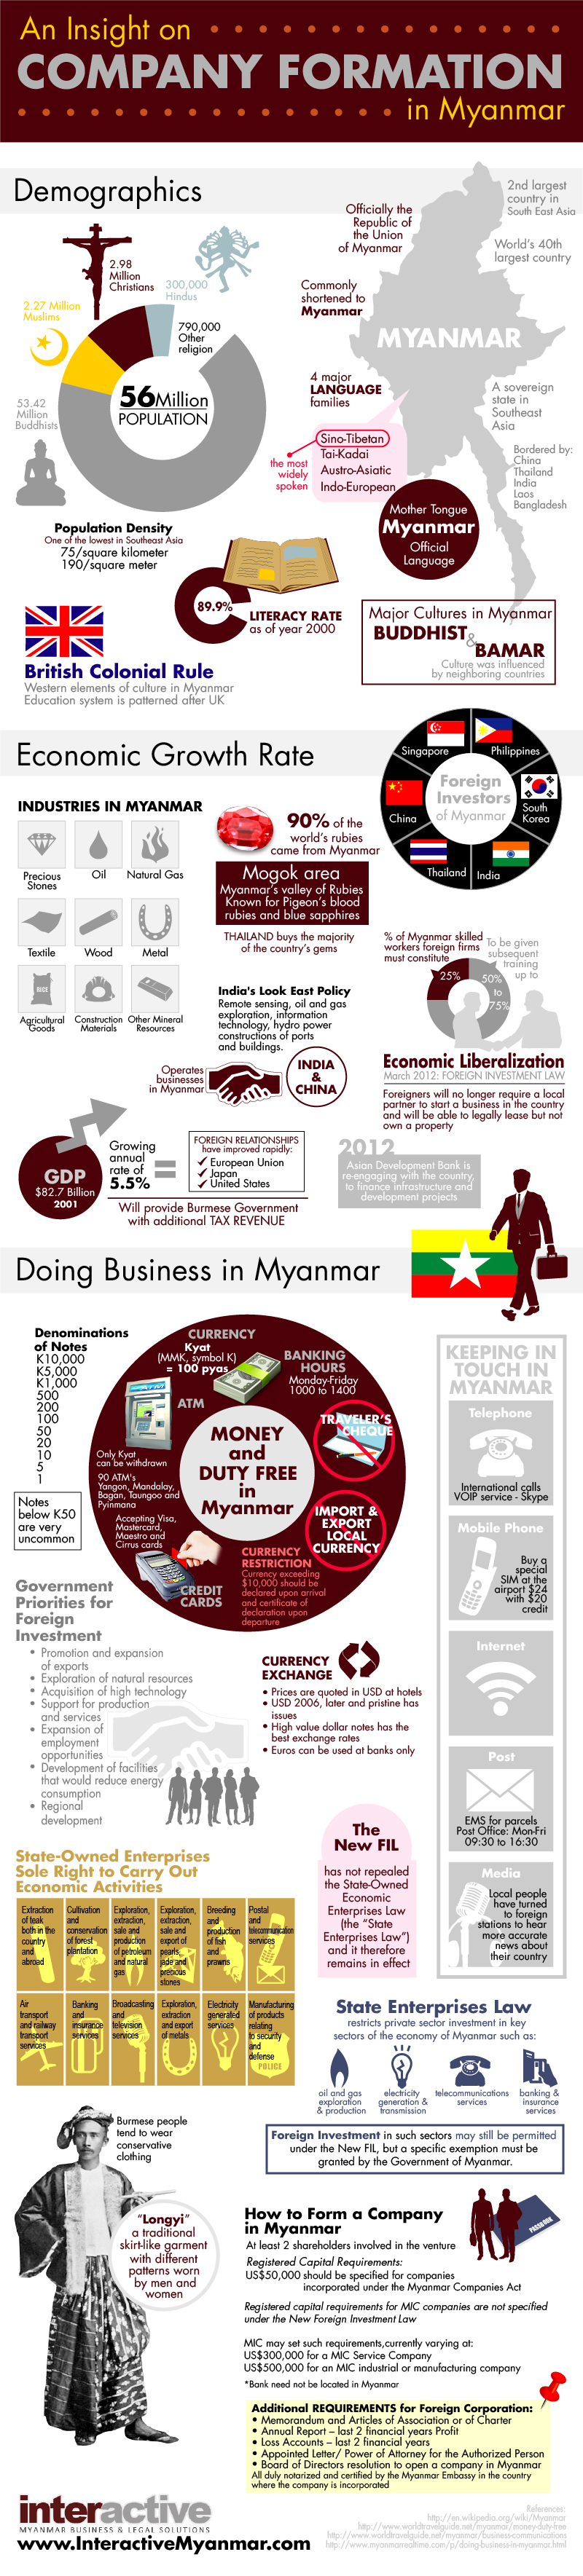 an-insight-on-company-formation-in-myanmar_525788dd63962